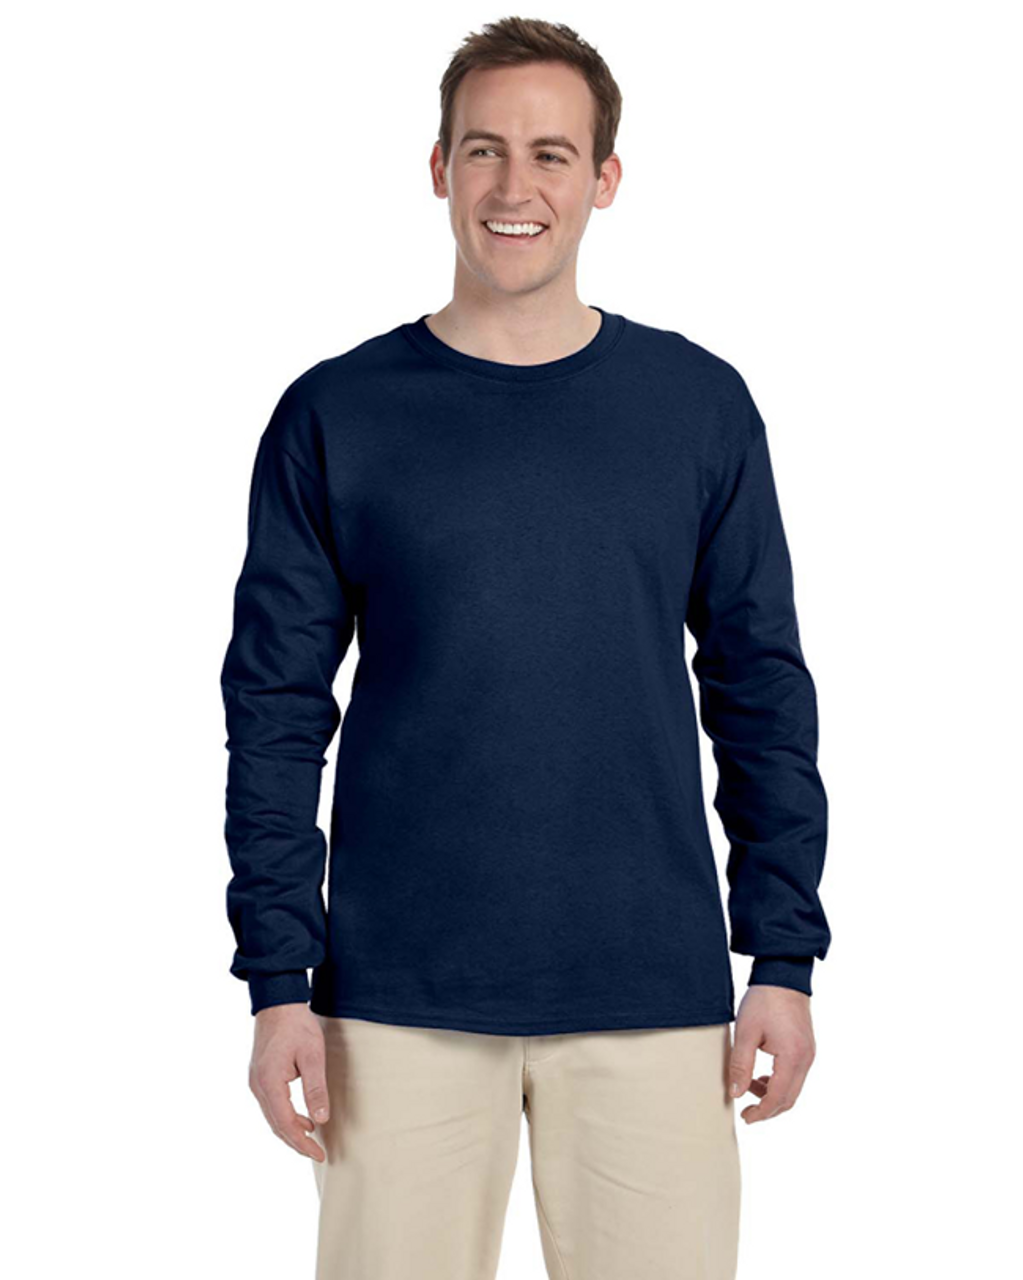 J. Navy - 4930 Fruit of the Loom 100% Heavy Cotton HD® Long-Sleeve T-Shirt | Blankclothing.ca